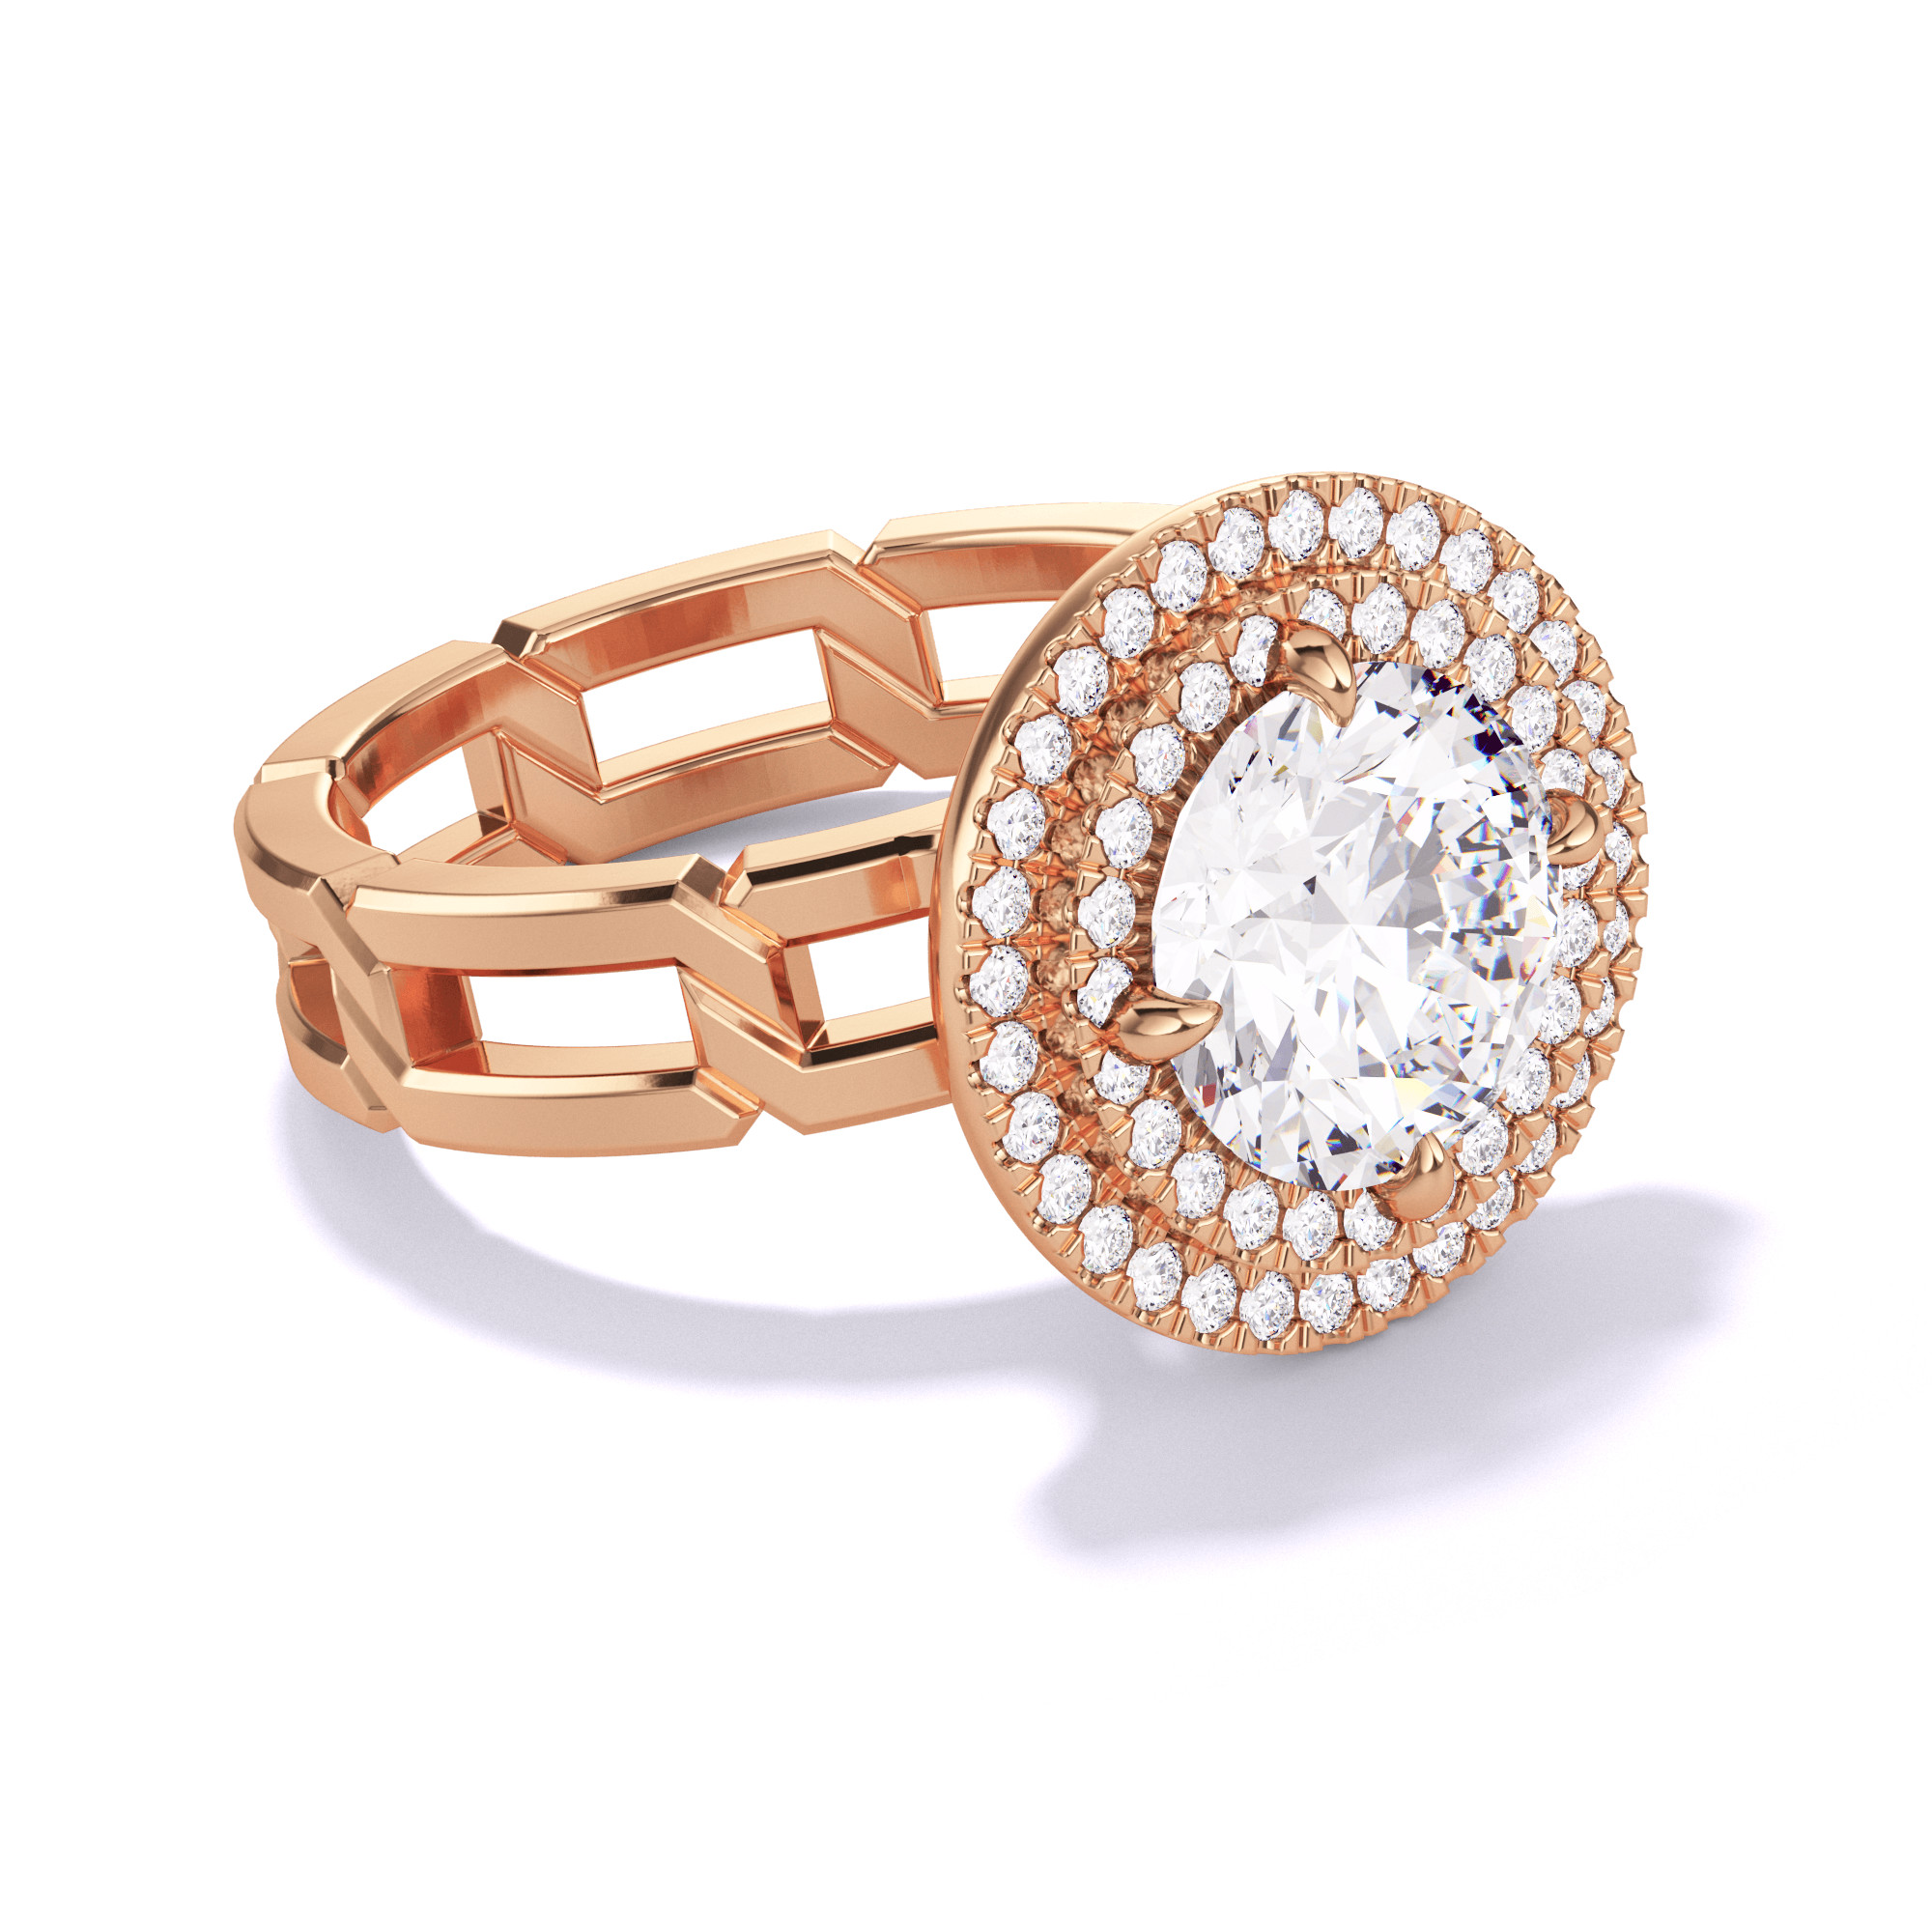 ROUND CUT, DOUBLE HALO SETTING, 8 LINKS, 18K ROSE GOLD